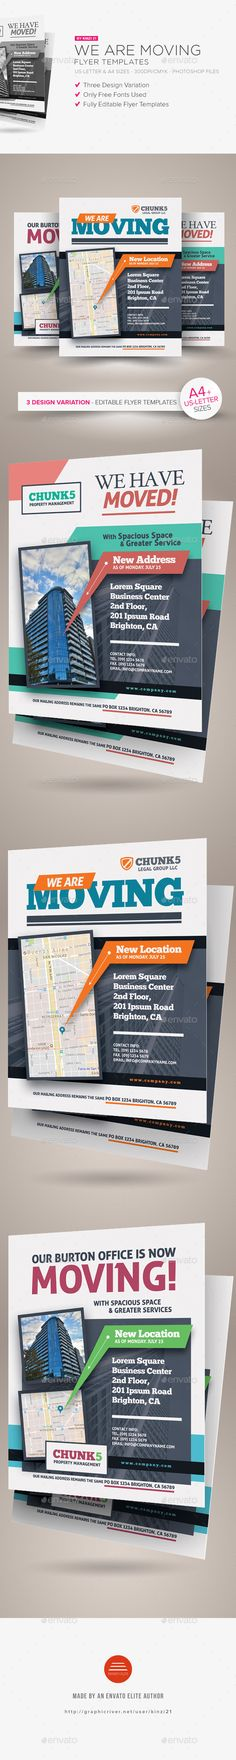 We Are Moving Flyer Templates - Corporate Flyers